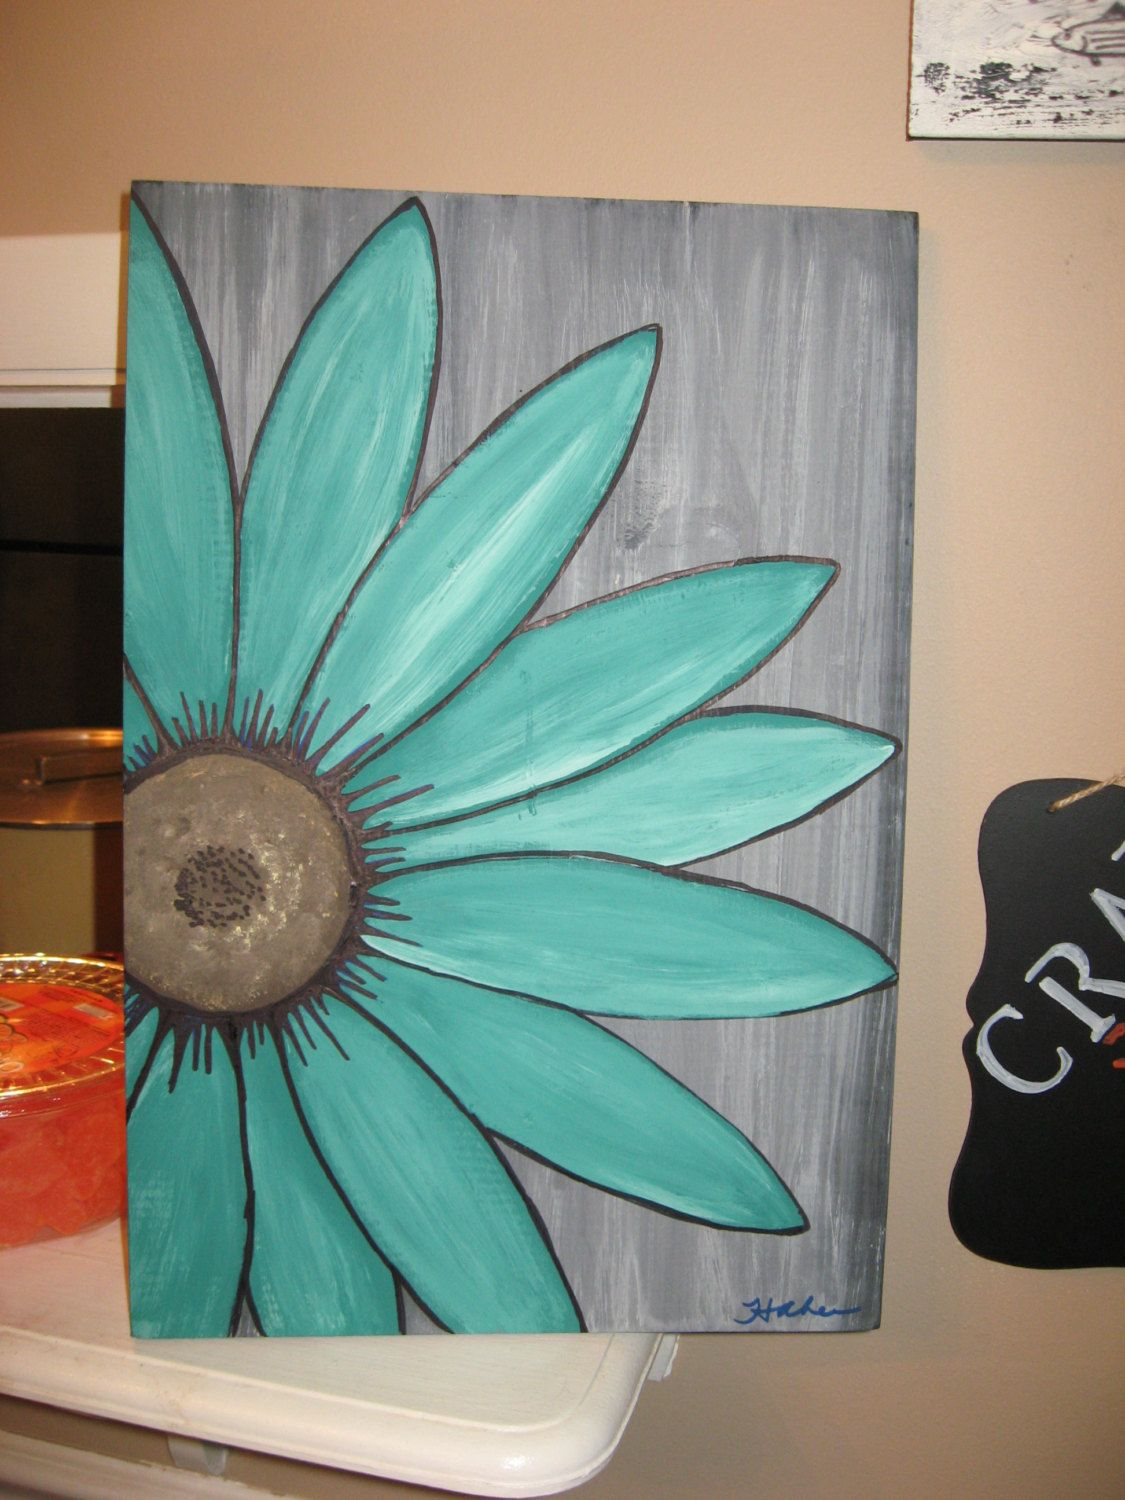 Paint for wood crafts - Find This Pin And More On Cuadro Turquoise Flower Daisy Painting Rustic Flower Wood